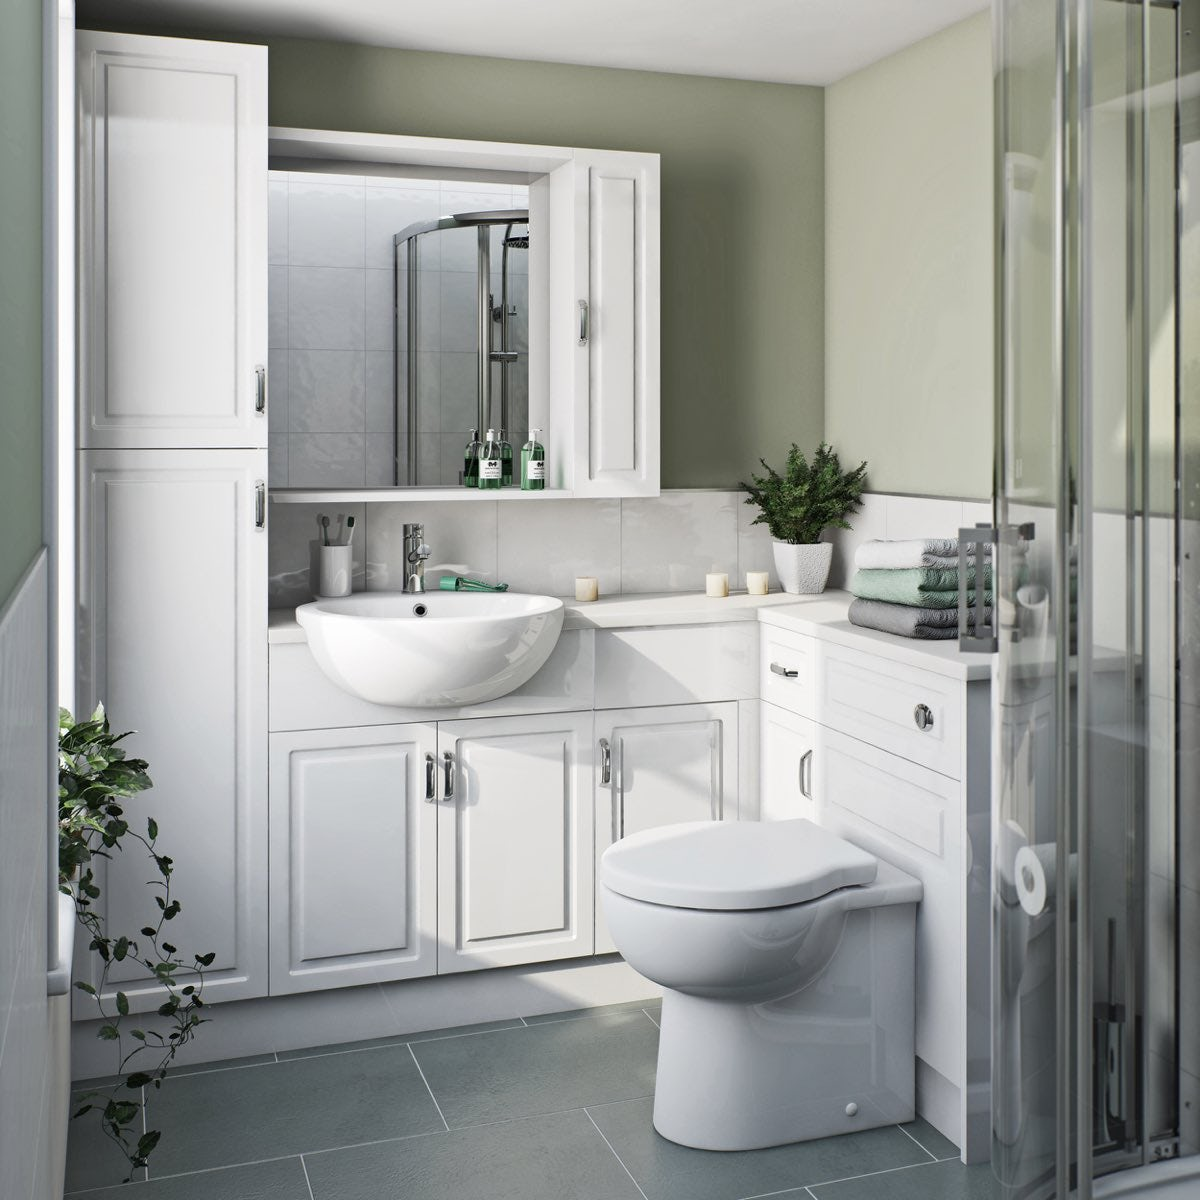 Orchard Florence corner ensuite storage unit pack with white top